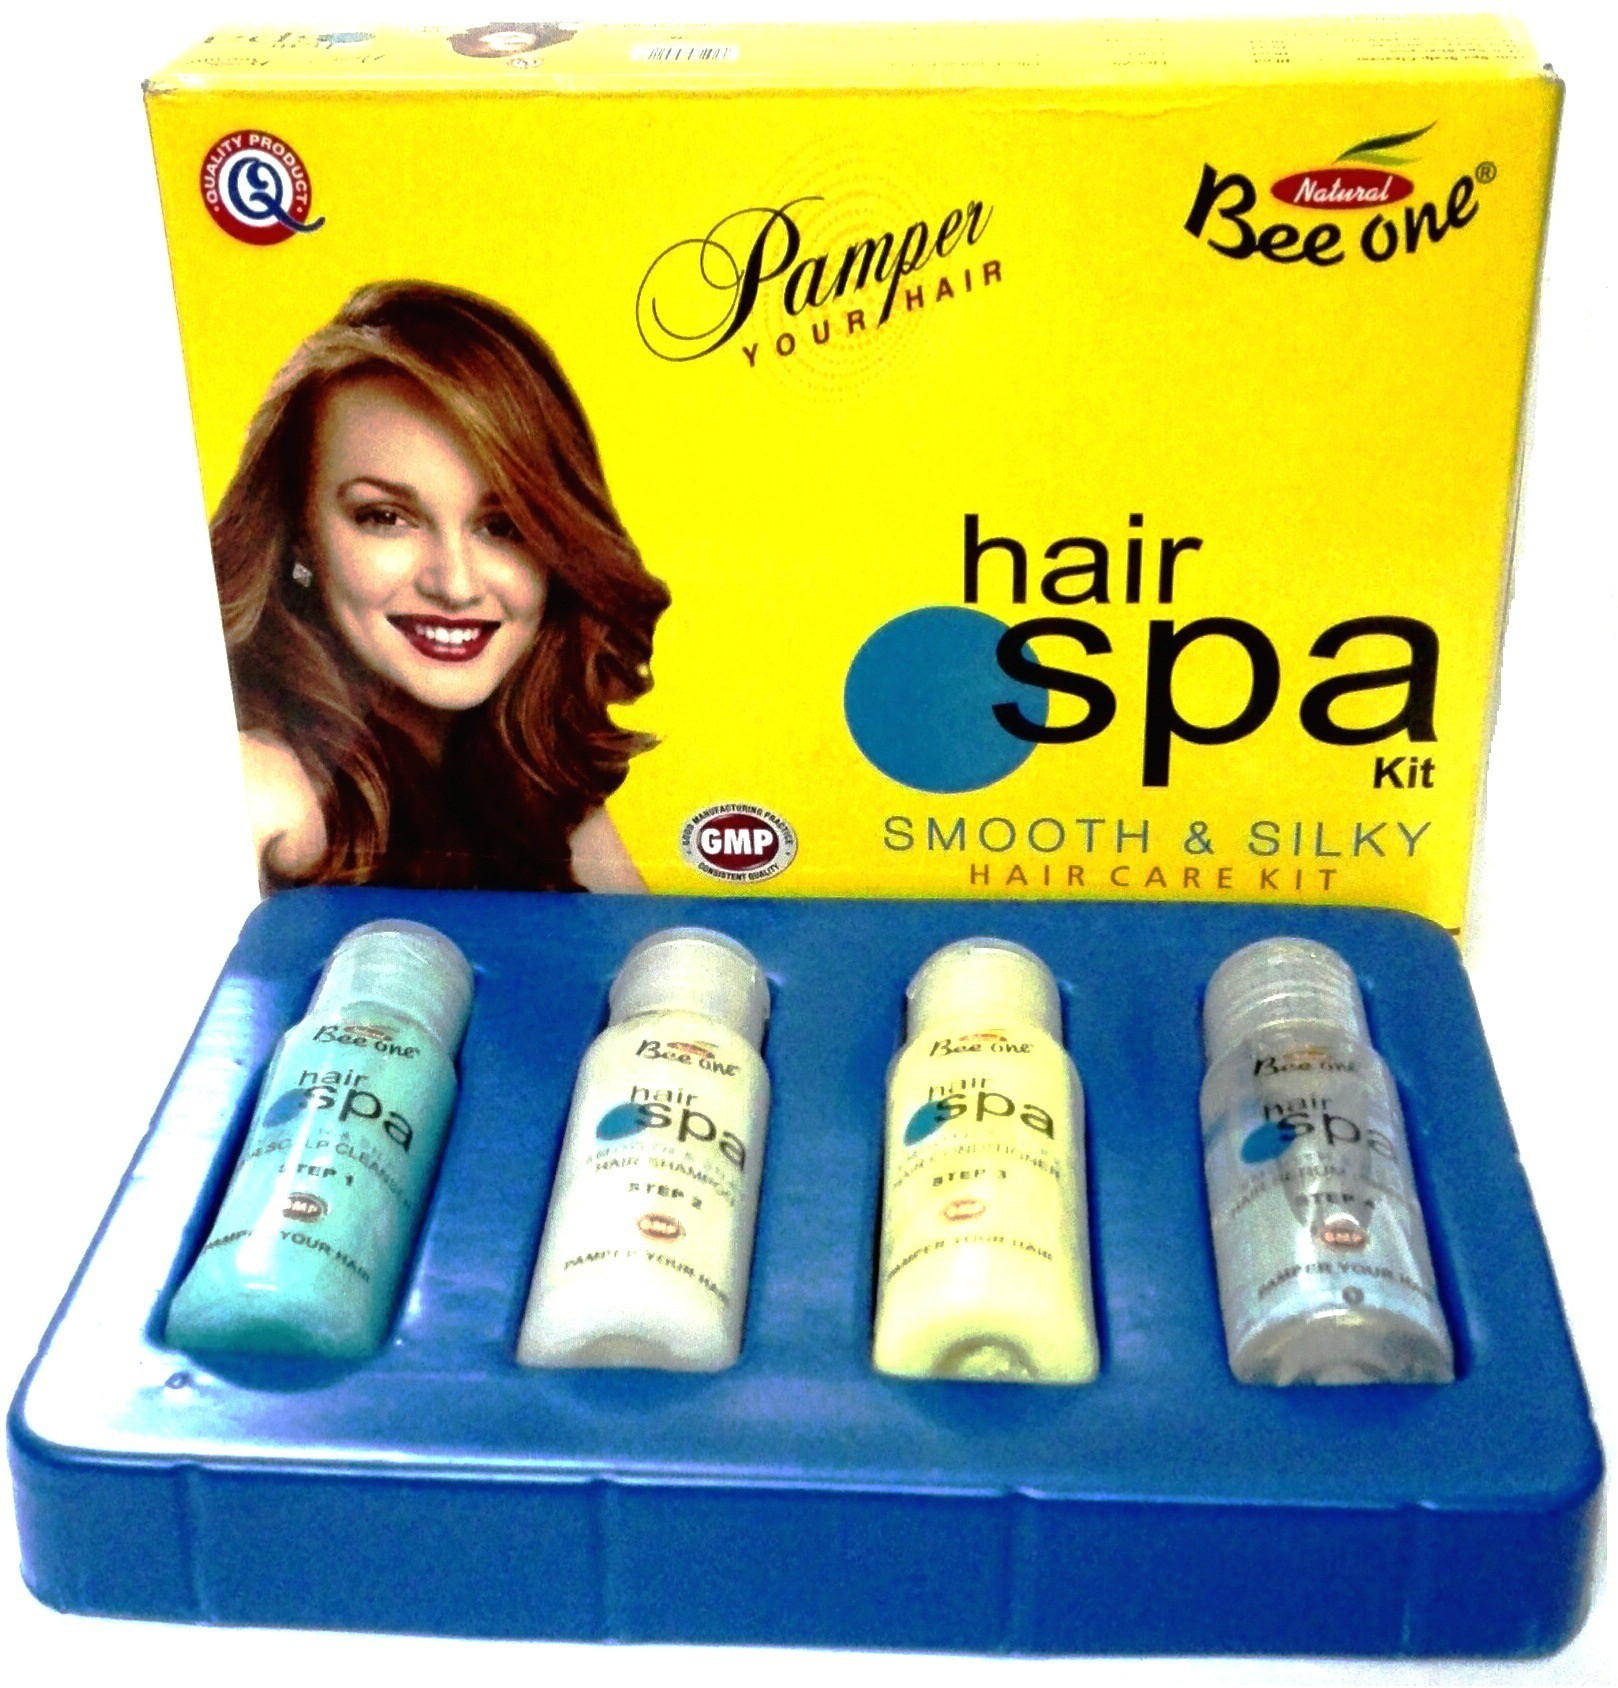 Out Of Box Beeone Hair Spa Kit(120 ml)